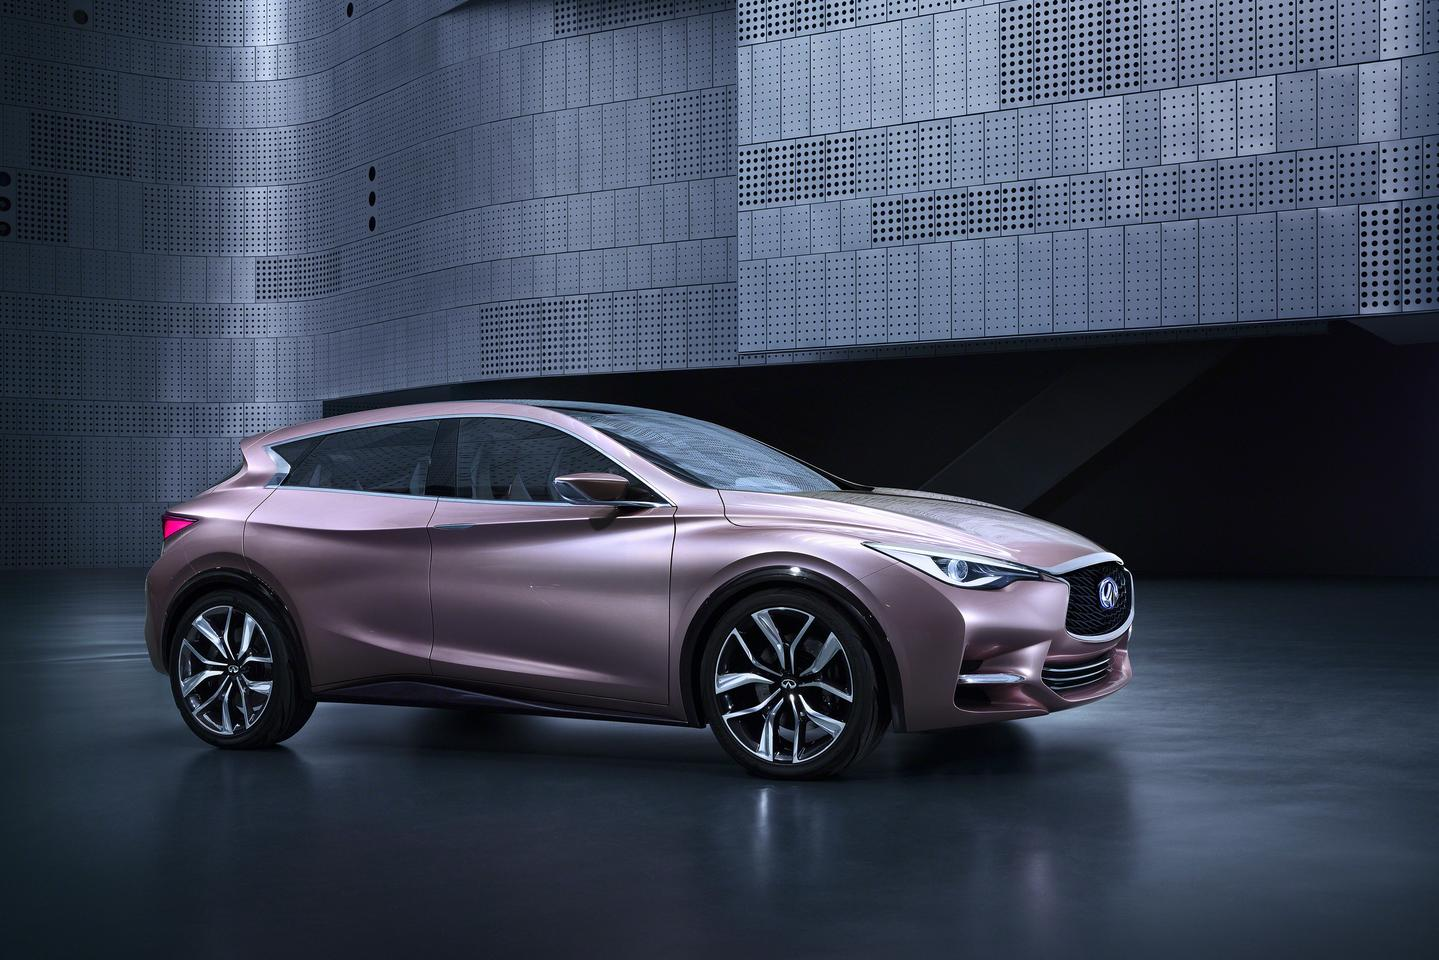 """Infiniti say its new Q30 Concept challenges categorisation – """"not a coupe, not a hatch and not a crossover but a fusion of the three body styles"""""""